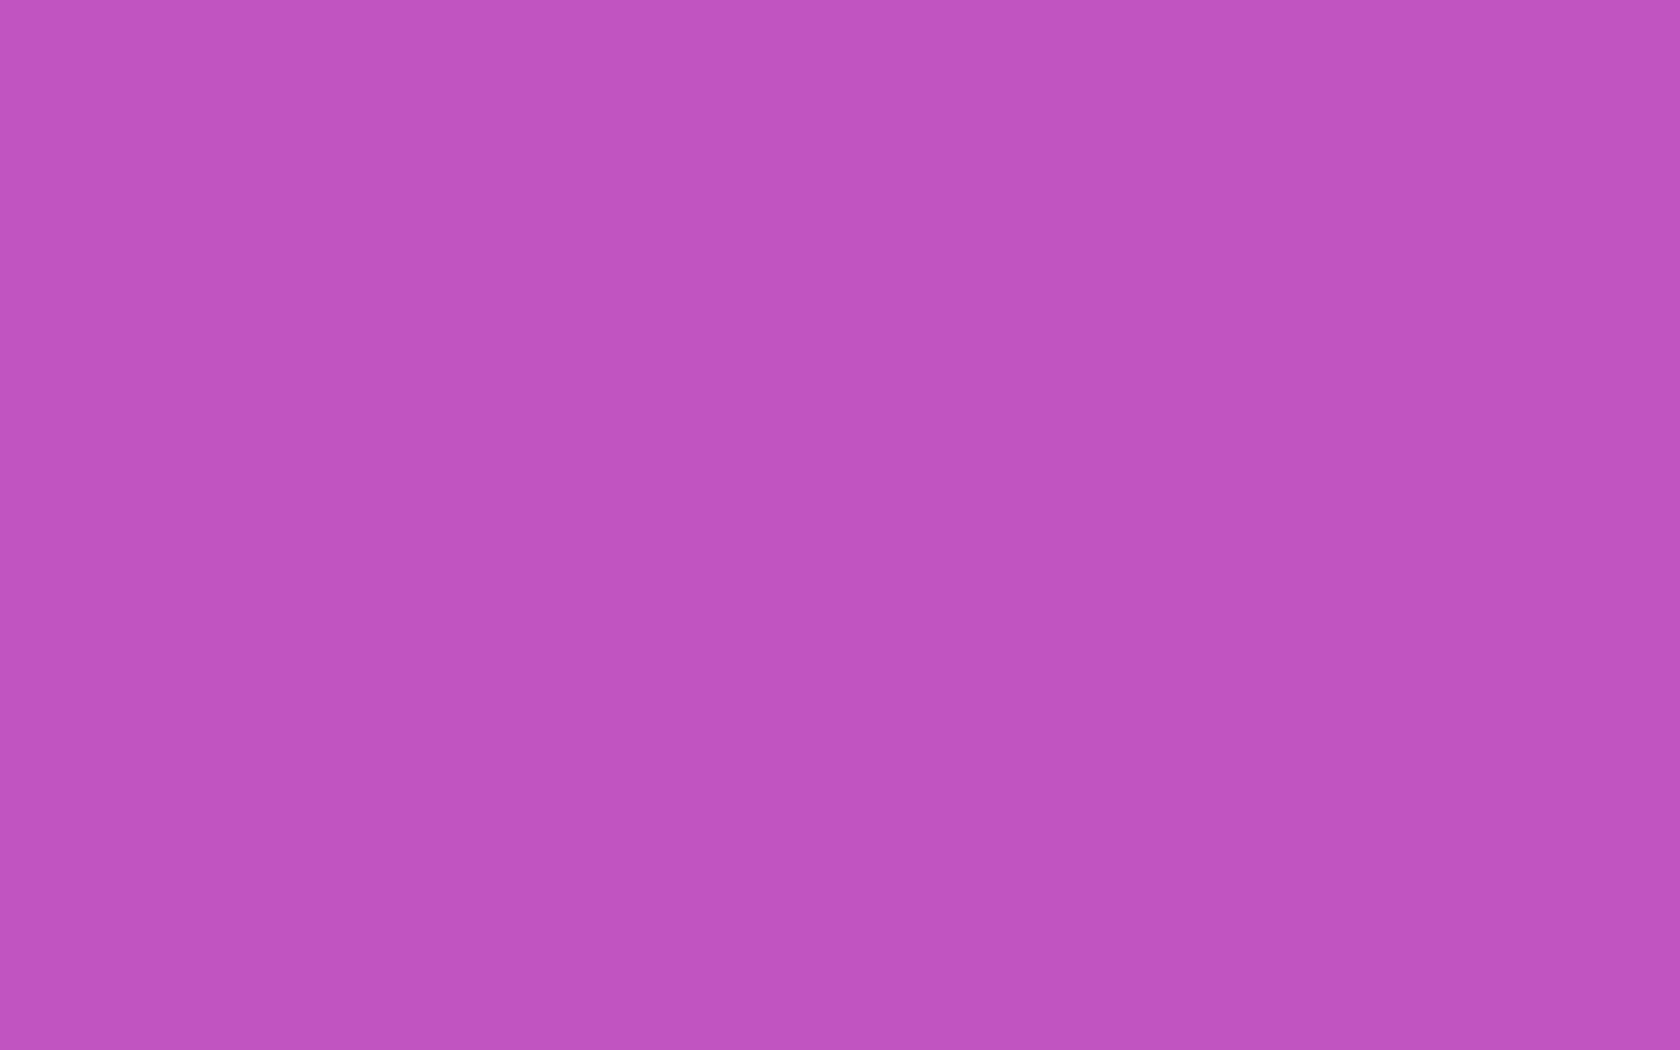 1680x1050 Deep Fuchsia Solid Color Background